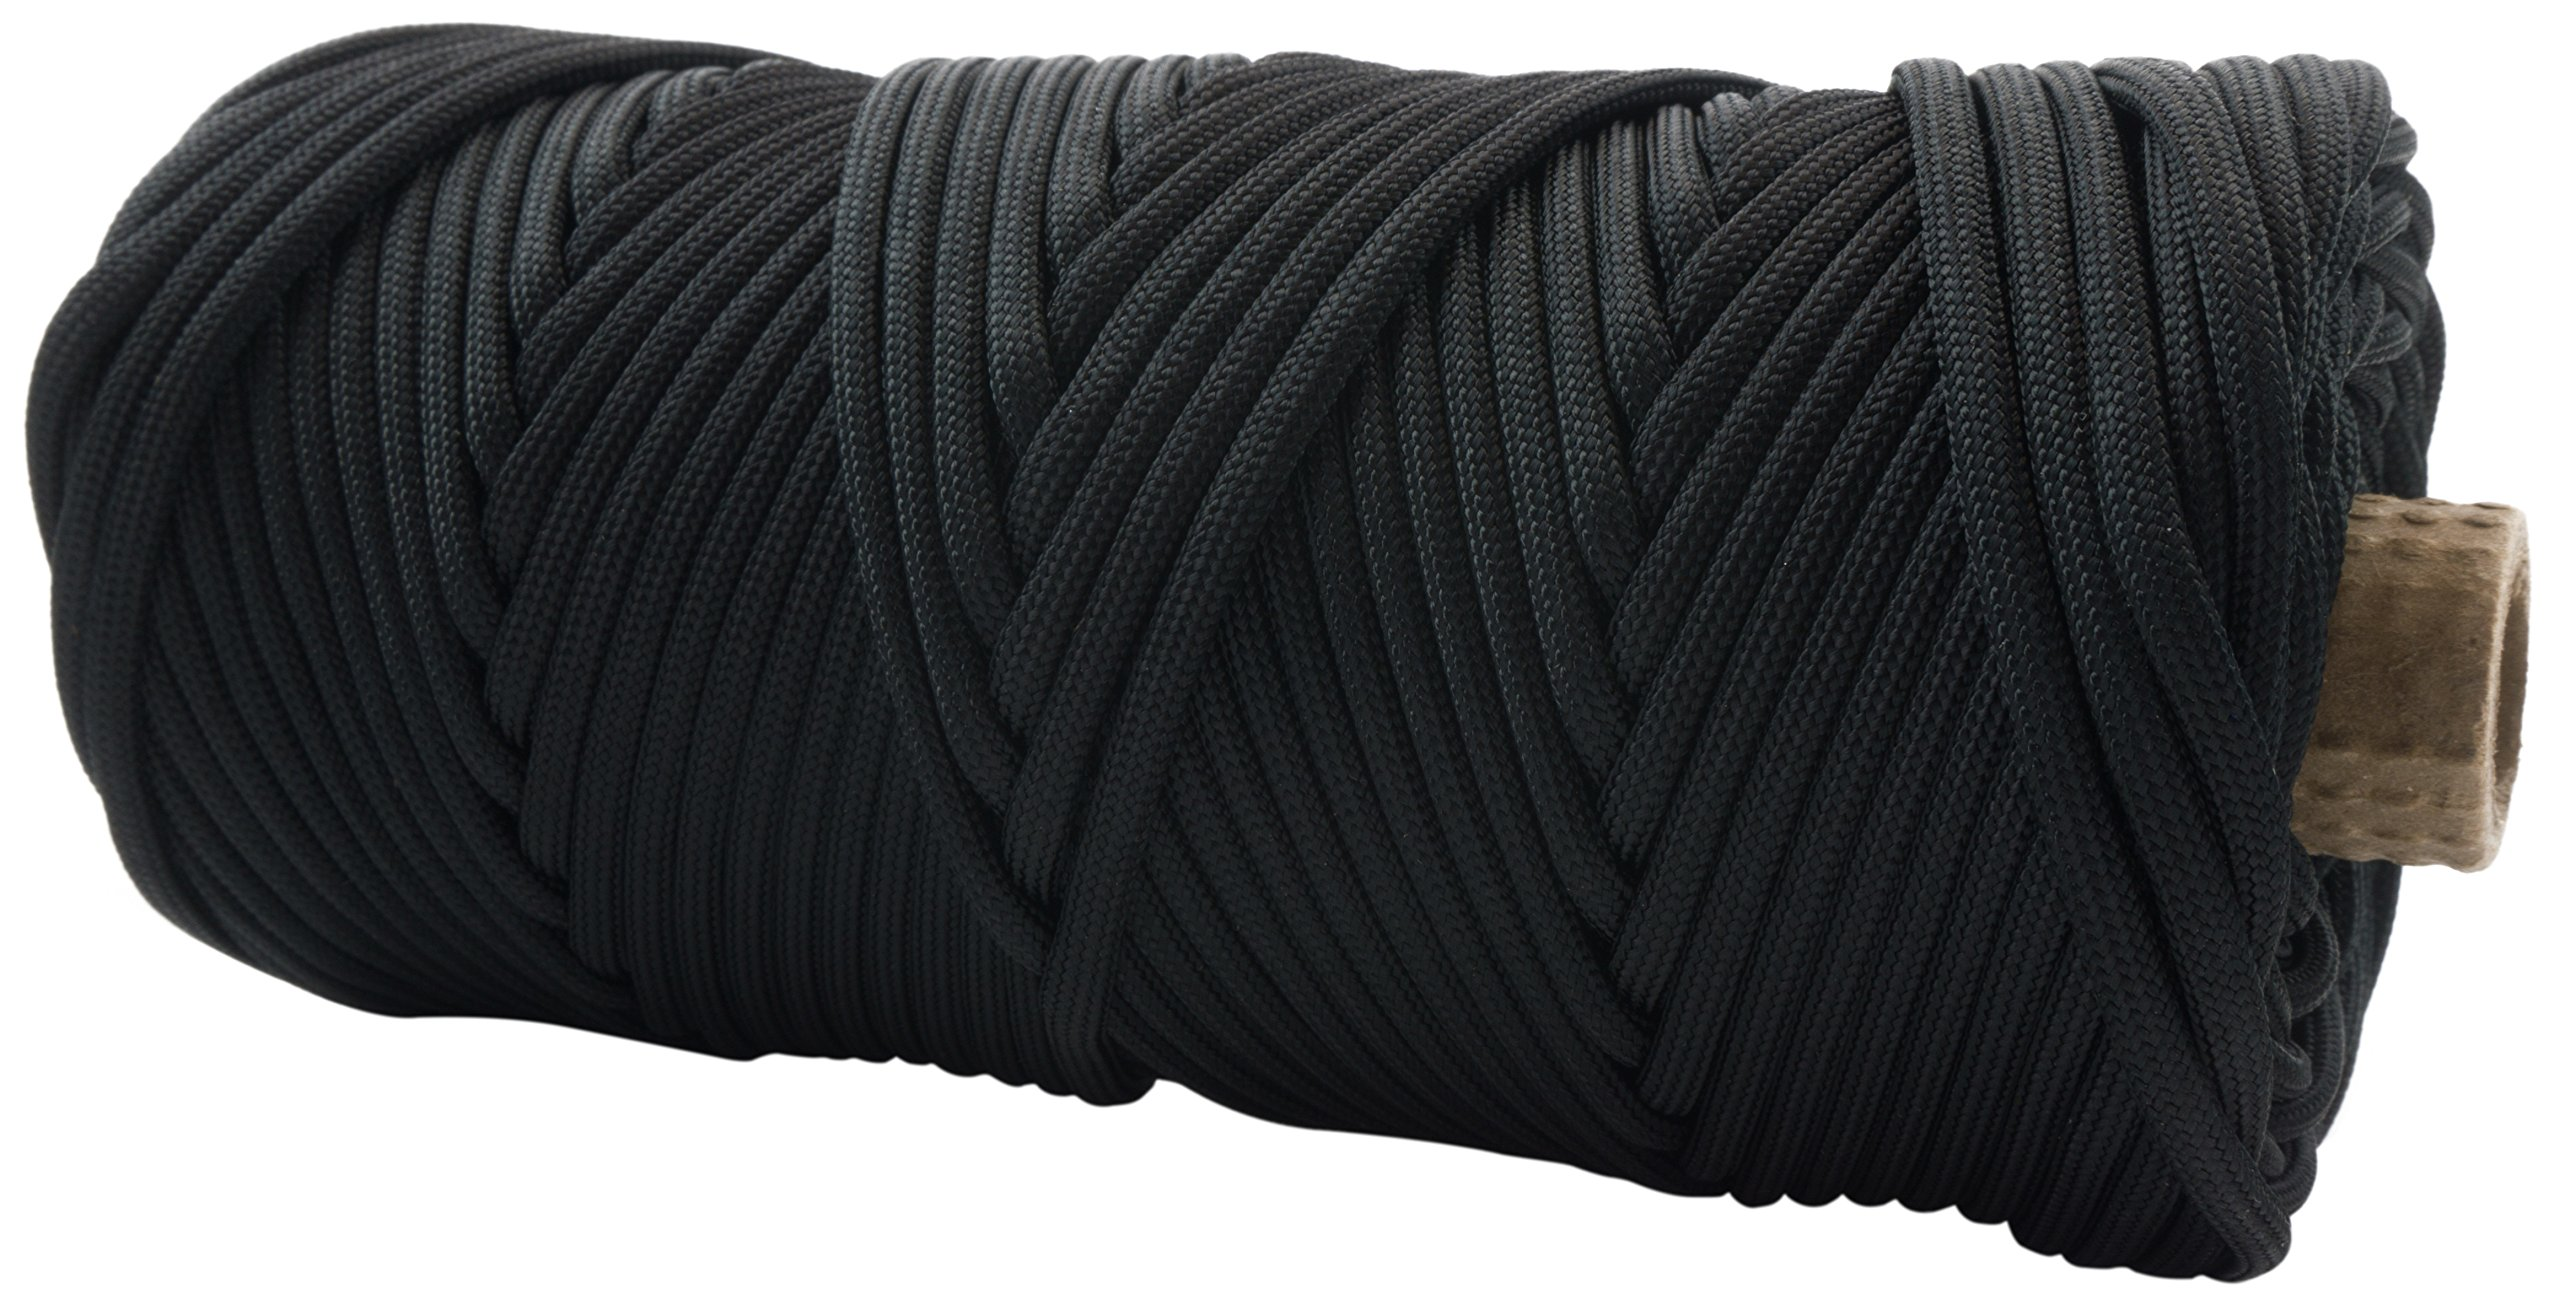 TOUGH-GRID 550lb Black Paracord/Parachute Cord - 100% Nylon Genuine Mil-Spec Type III Paracord Used by The US Military - Great for Bracelets and Lanyards - Made in The USA. 50Ft. - Black by TOUGH-GRID (Image #2)